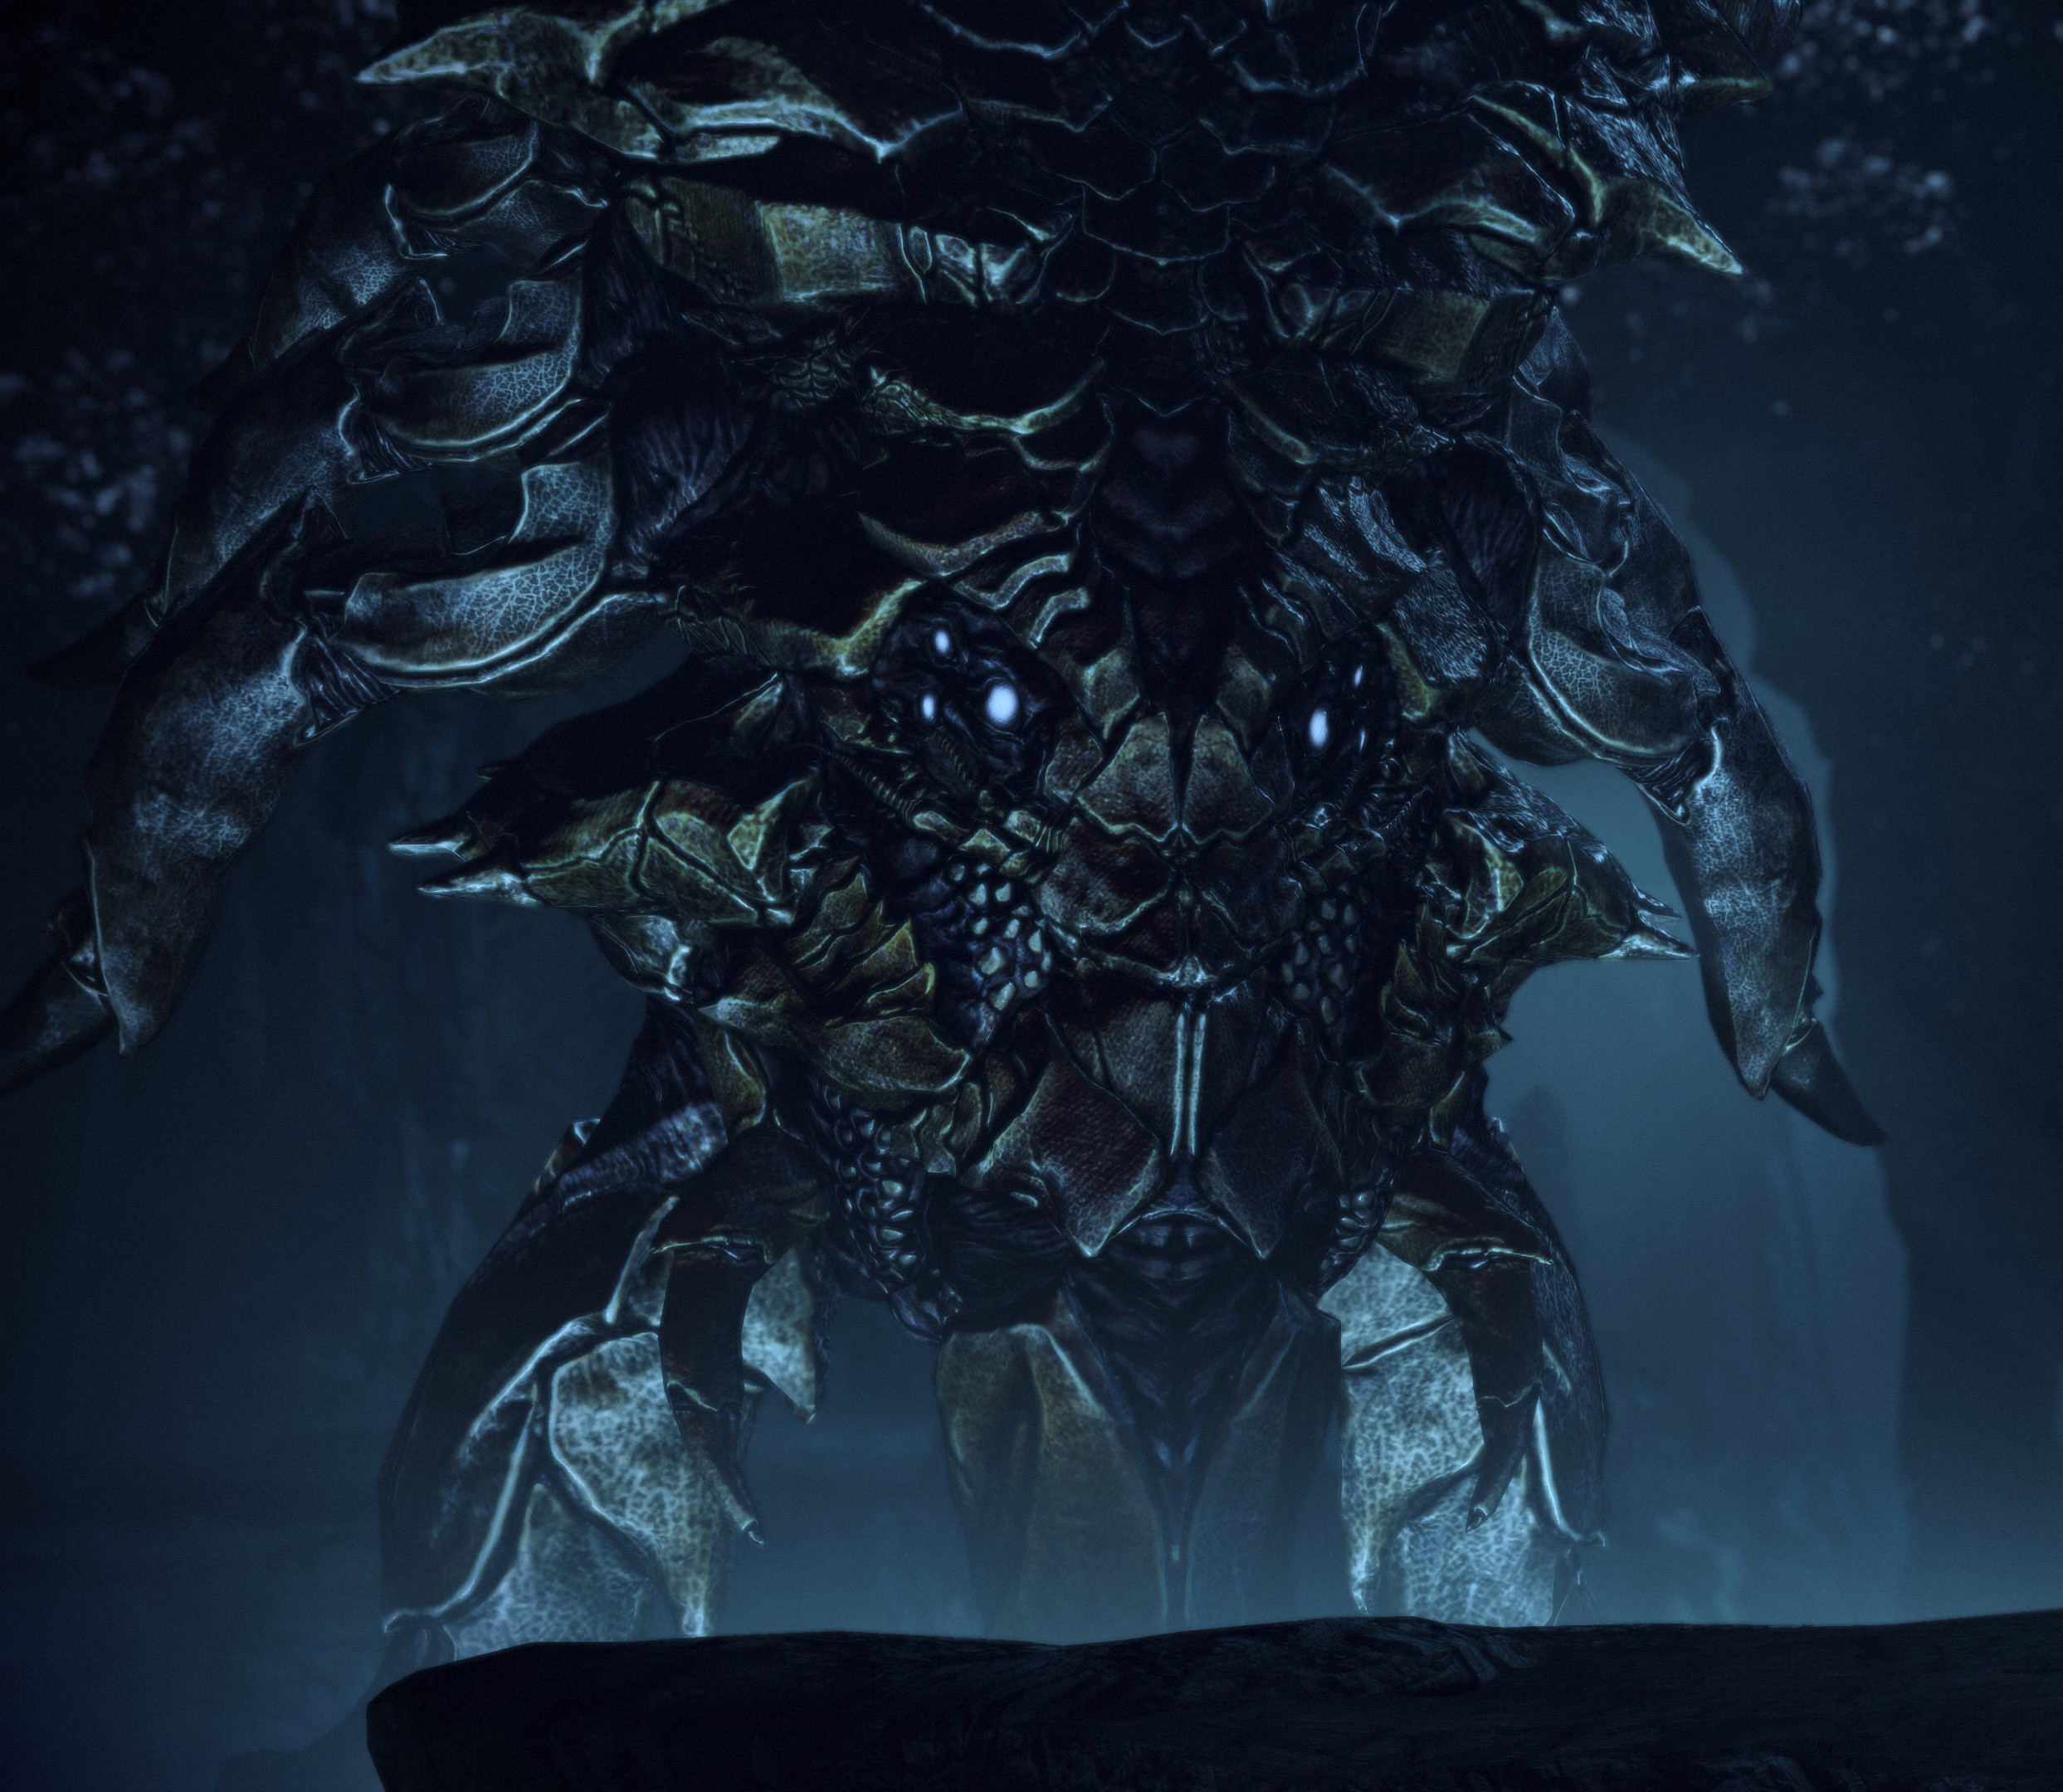 http://vignette1.wikia.nocookie.net/masseffect/images/5/53/ME3_Leviathan_Creature.png/revision/latest?cb=20120829031138 Mass